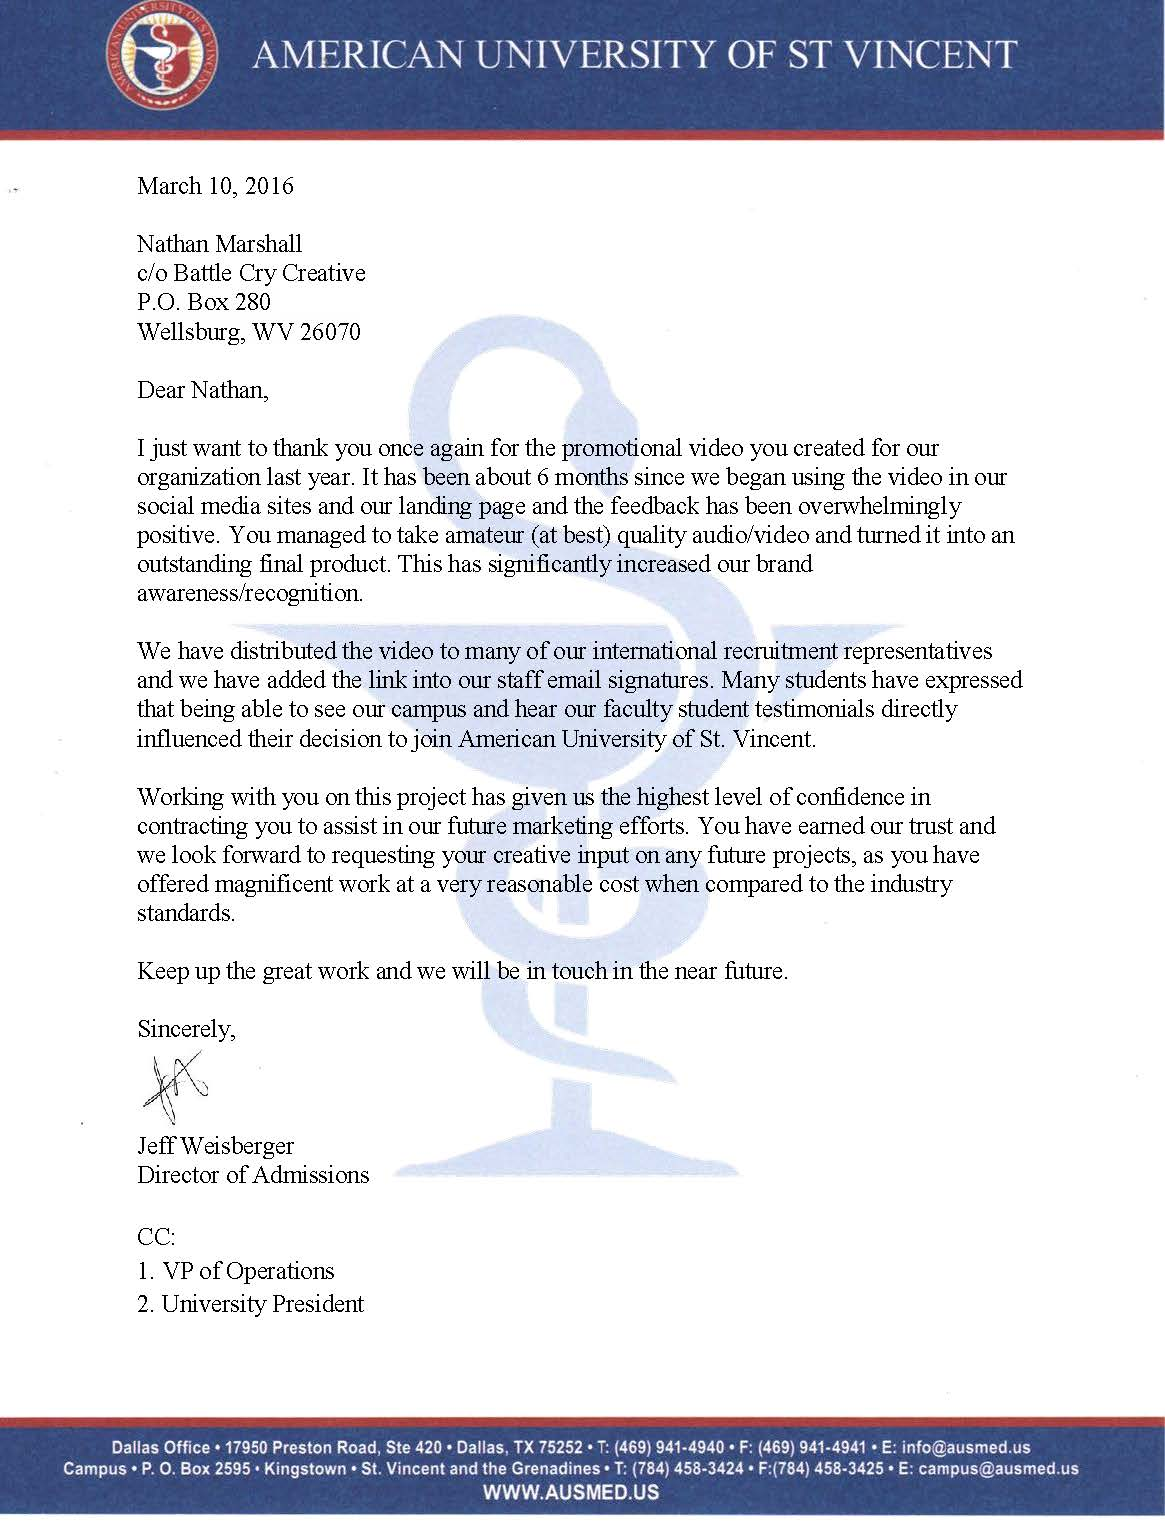 A LETTER OF APPRECIATION FROM THE UNIVERSITY